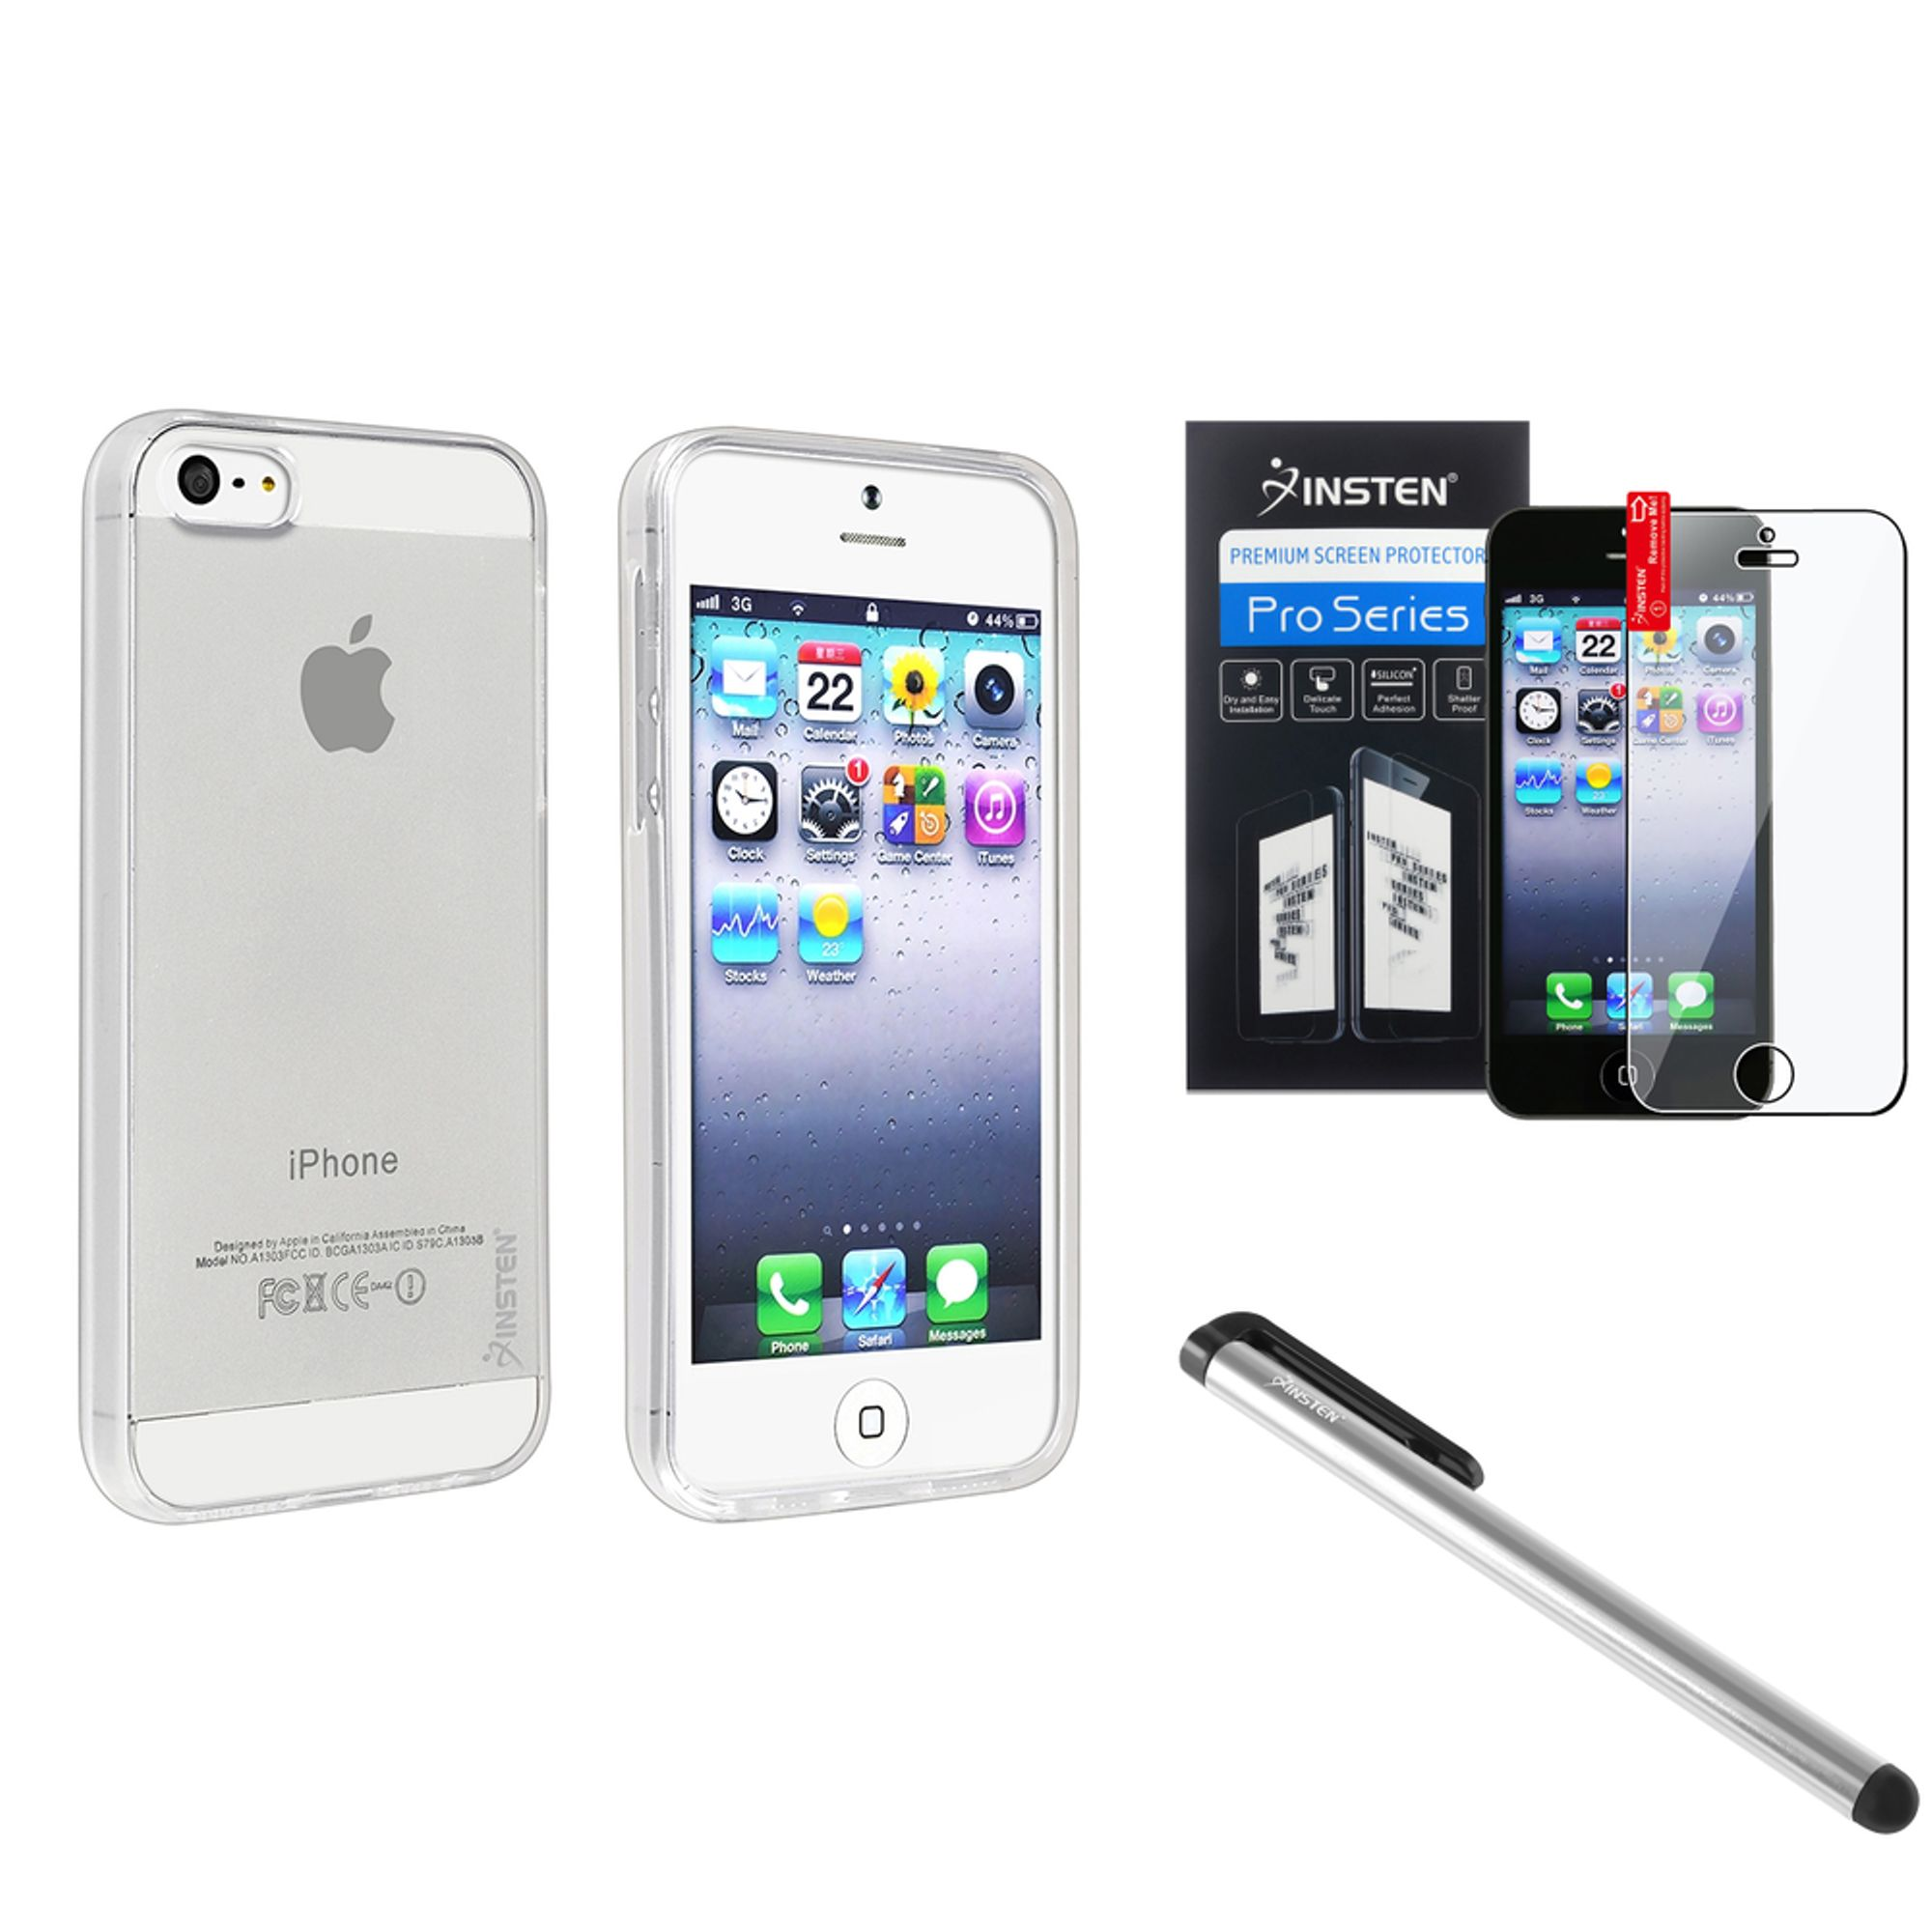 Insten Clear Bumper Jelly Gel TPU Rubber Skin Case Cover+Protector+Stylus Pen for iPhone SE 5S 5